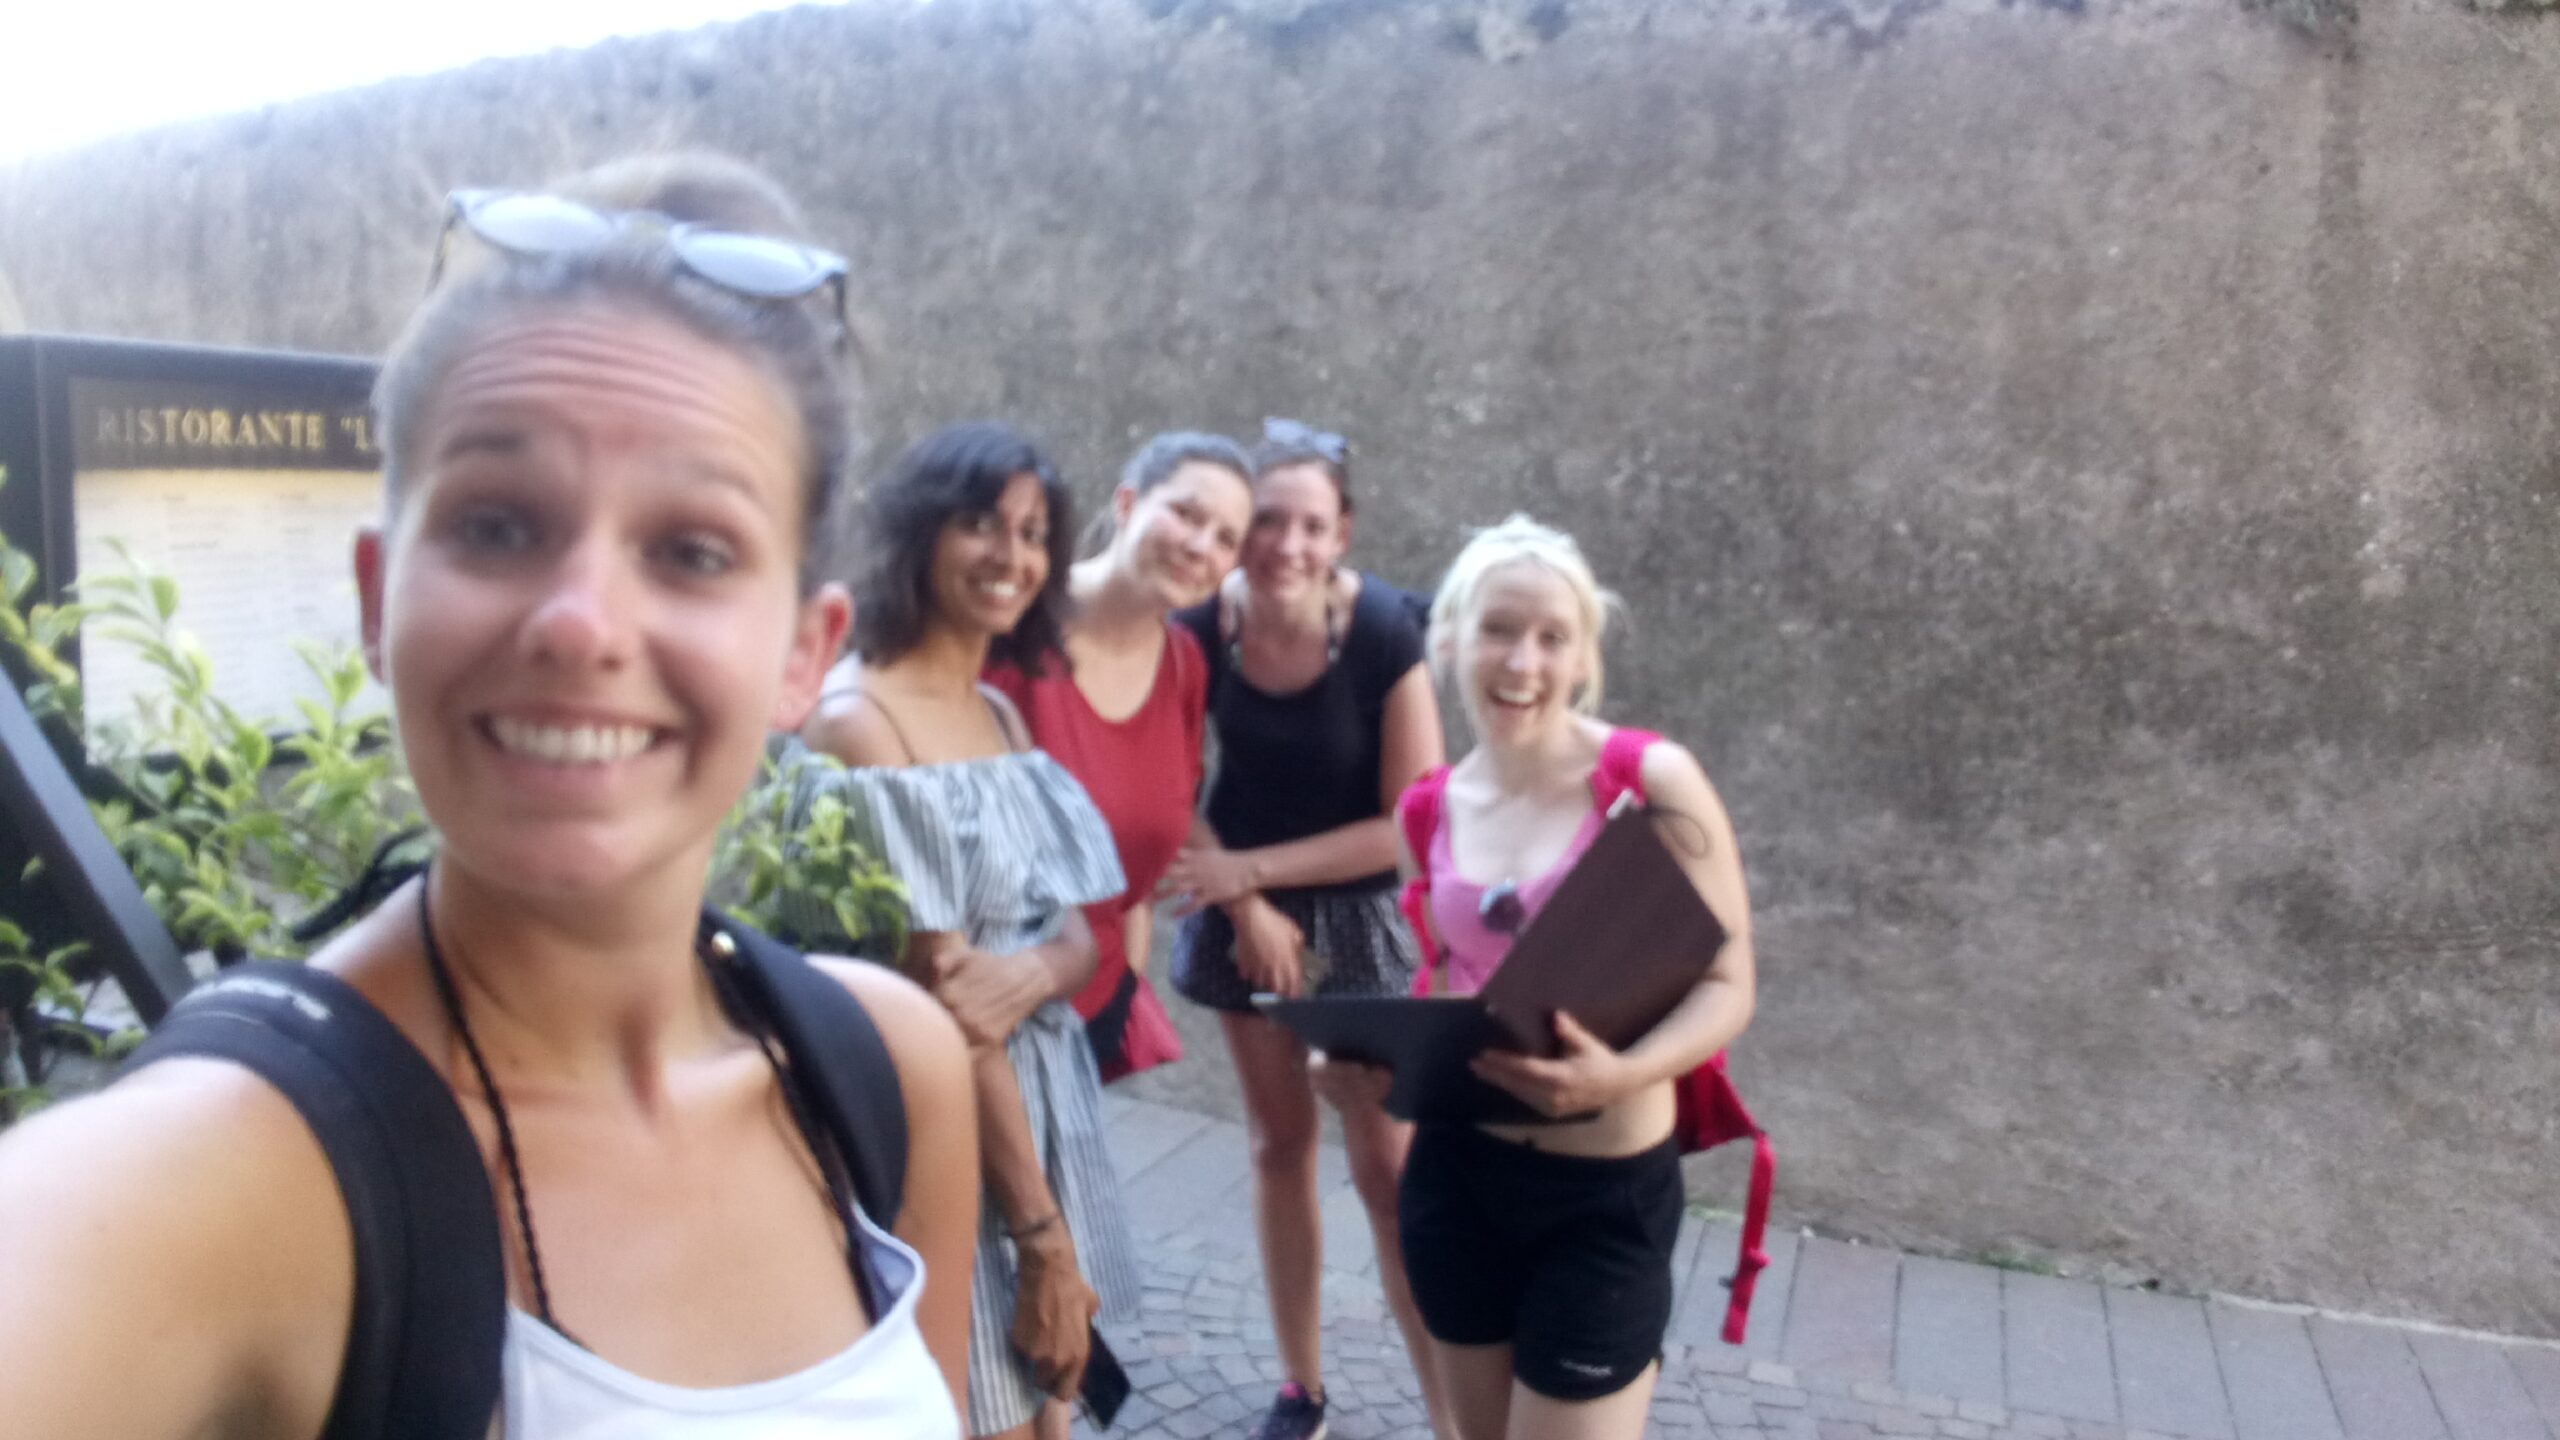 Cycle ride around Lake Garda with the girls in my hostel room, Italy 2016